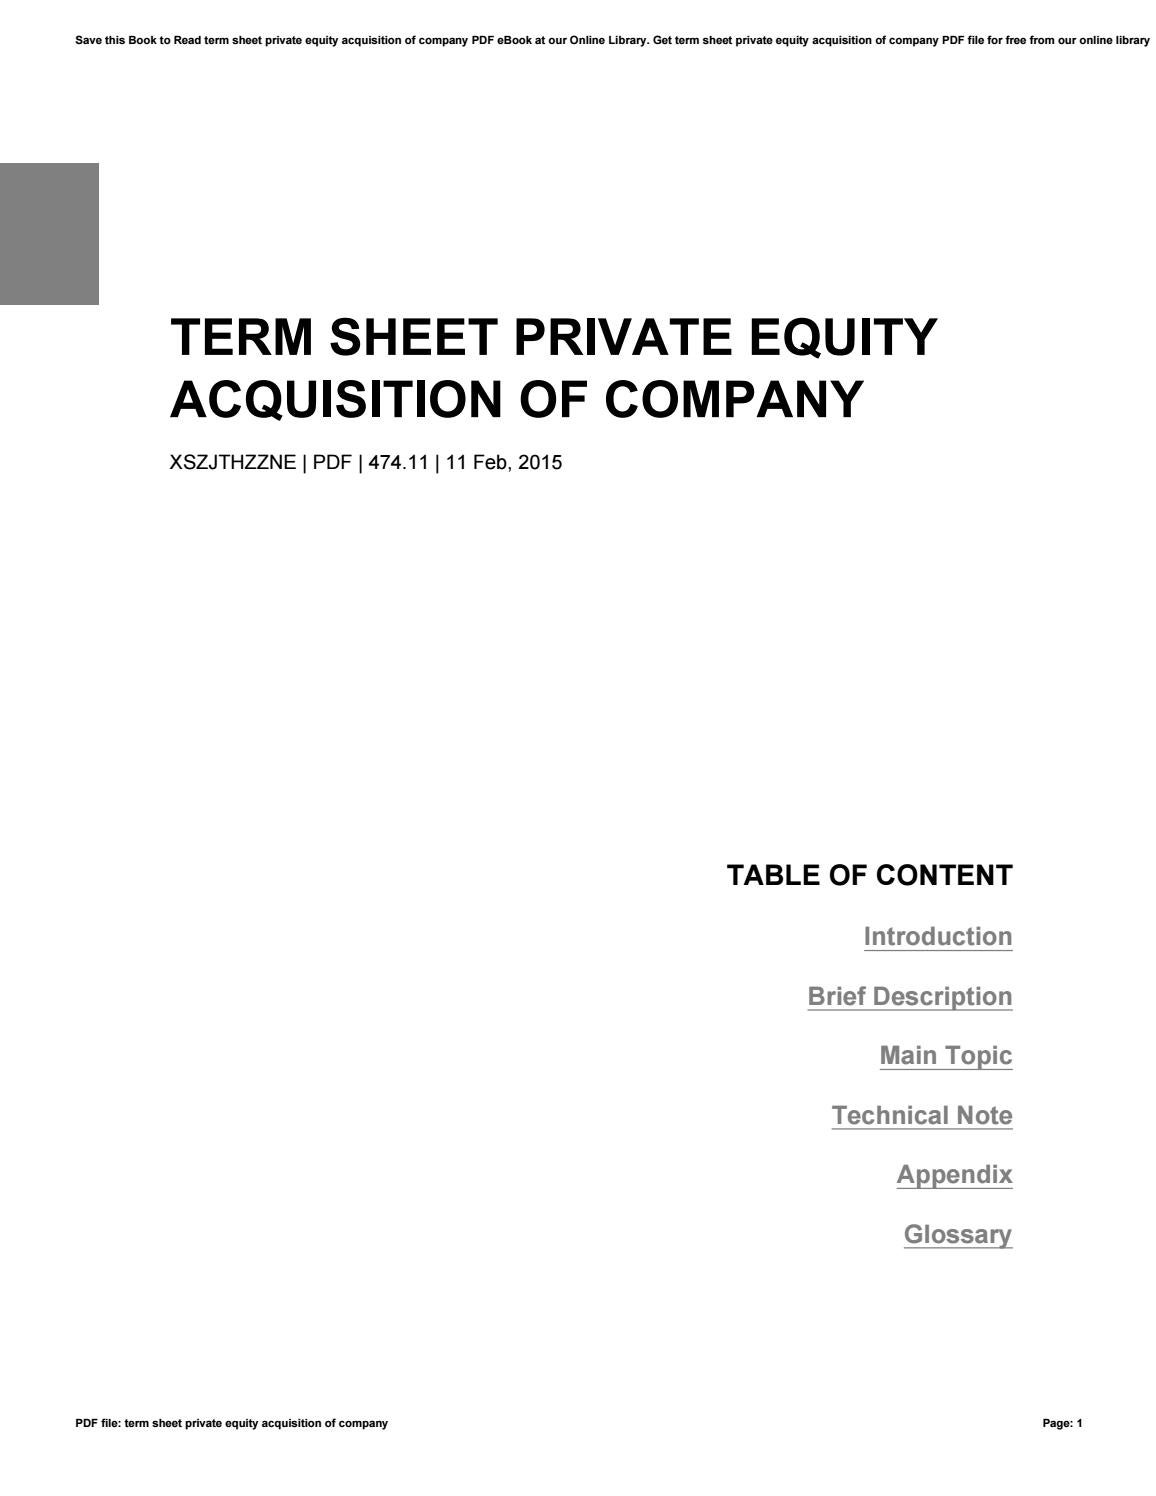 Term sheet private equity acquisition of company by